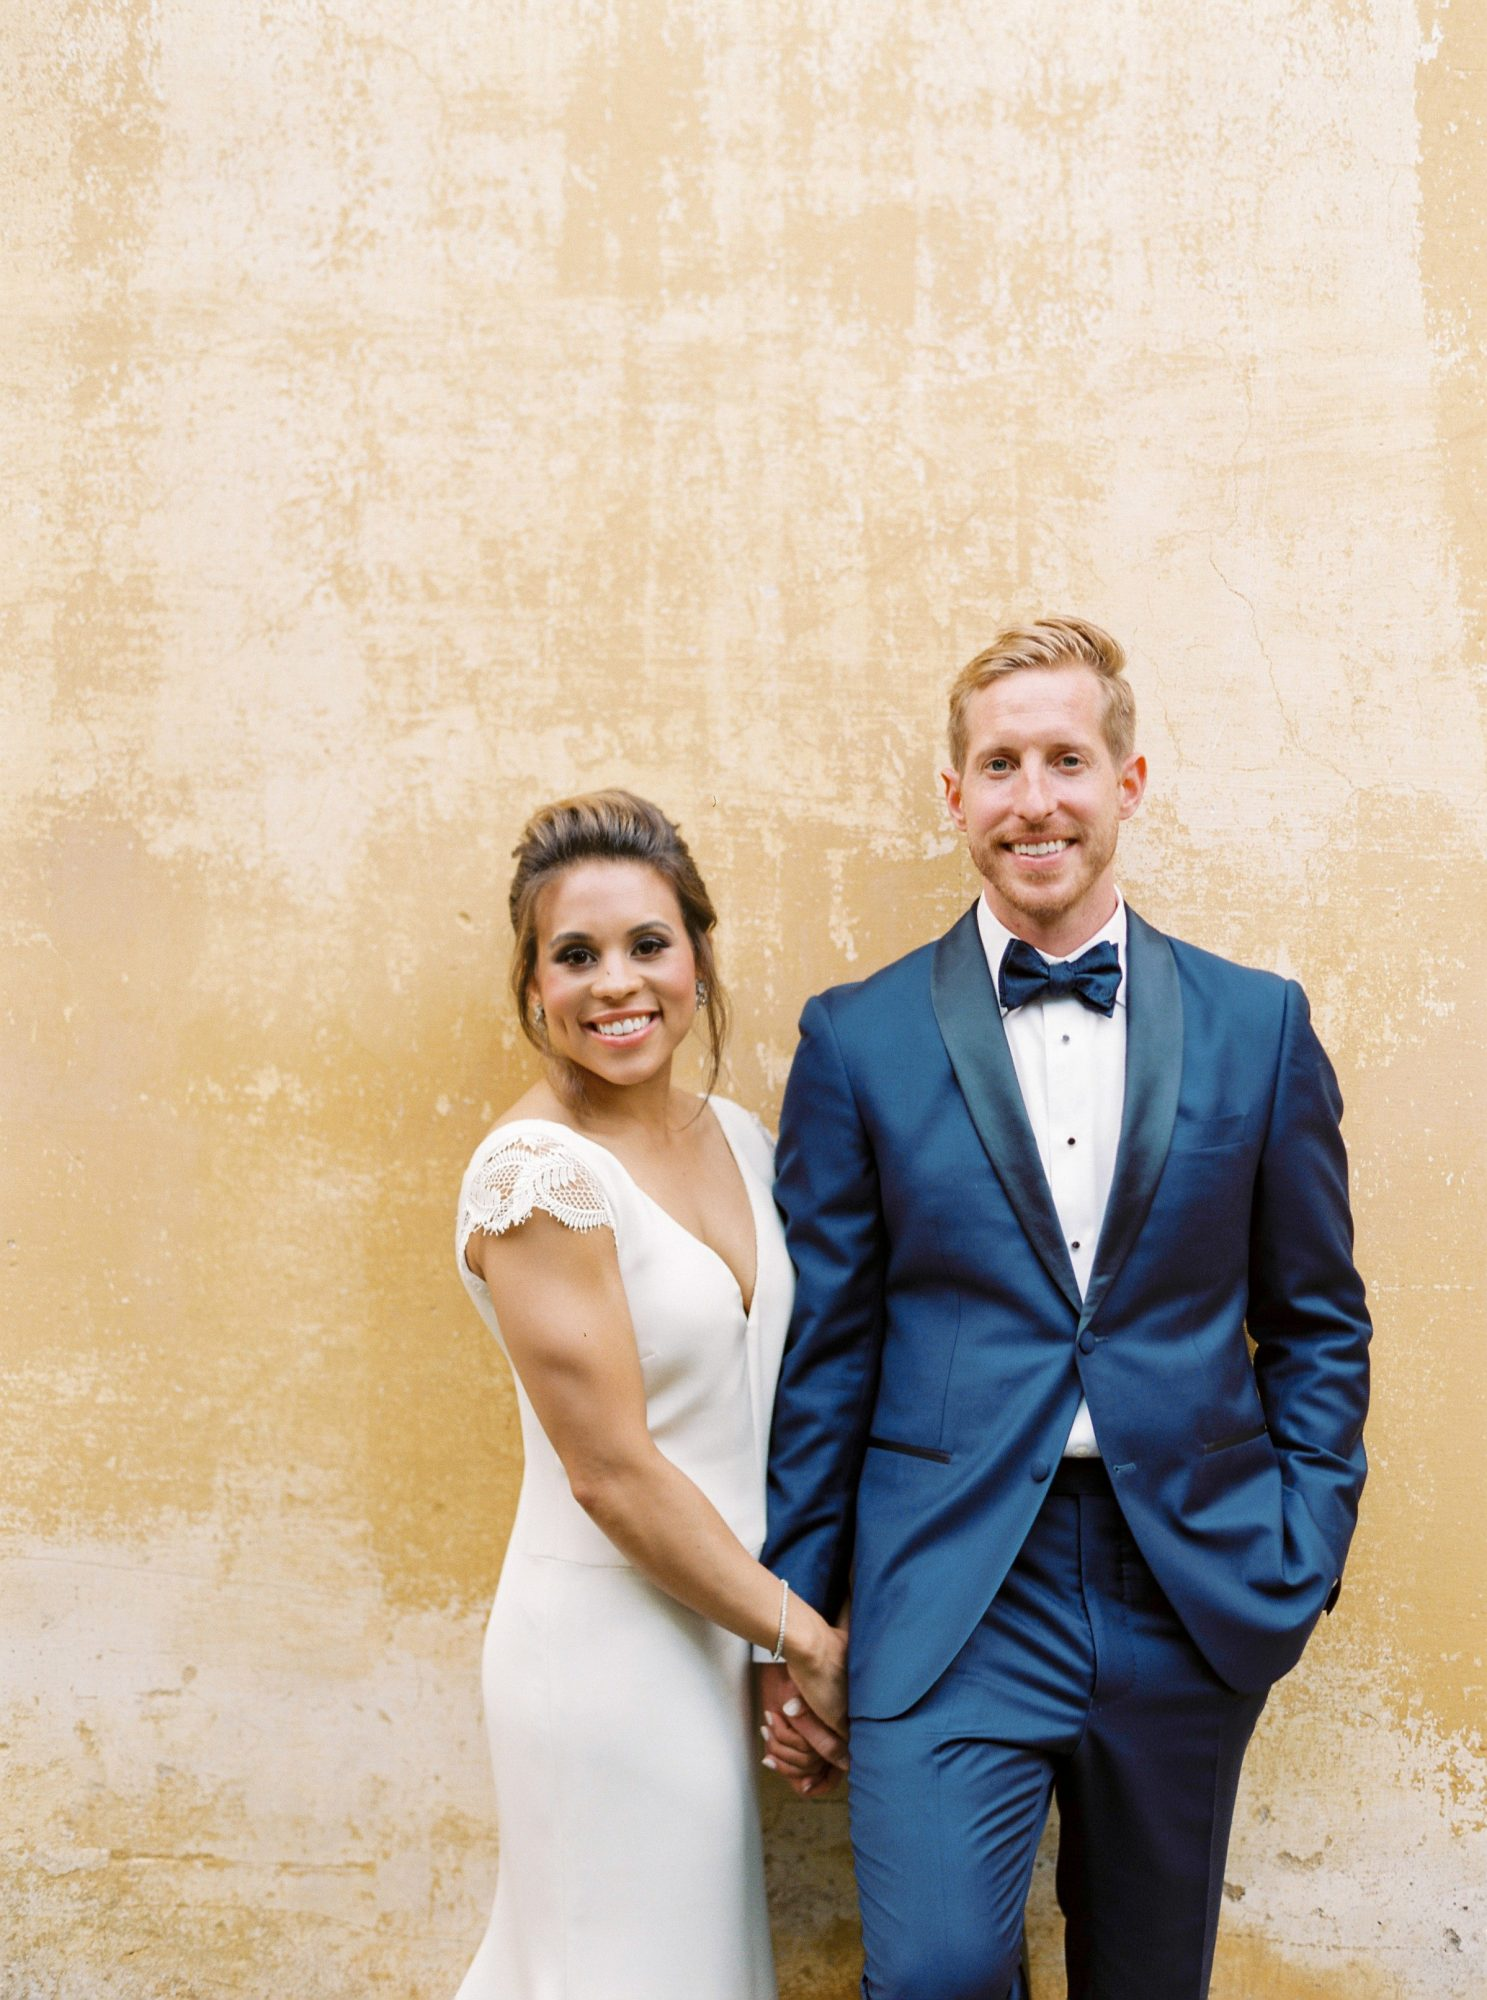 wedding couple posing in front of stone wall